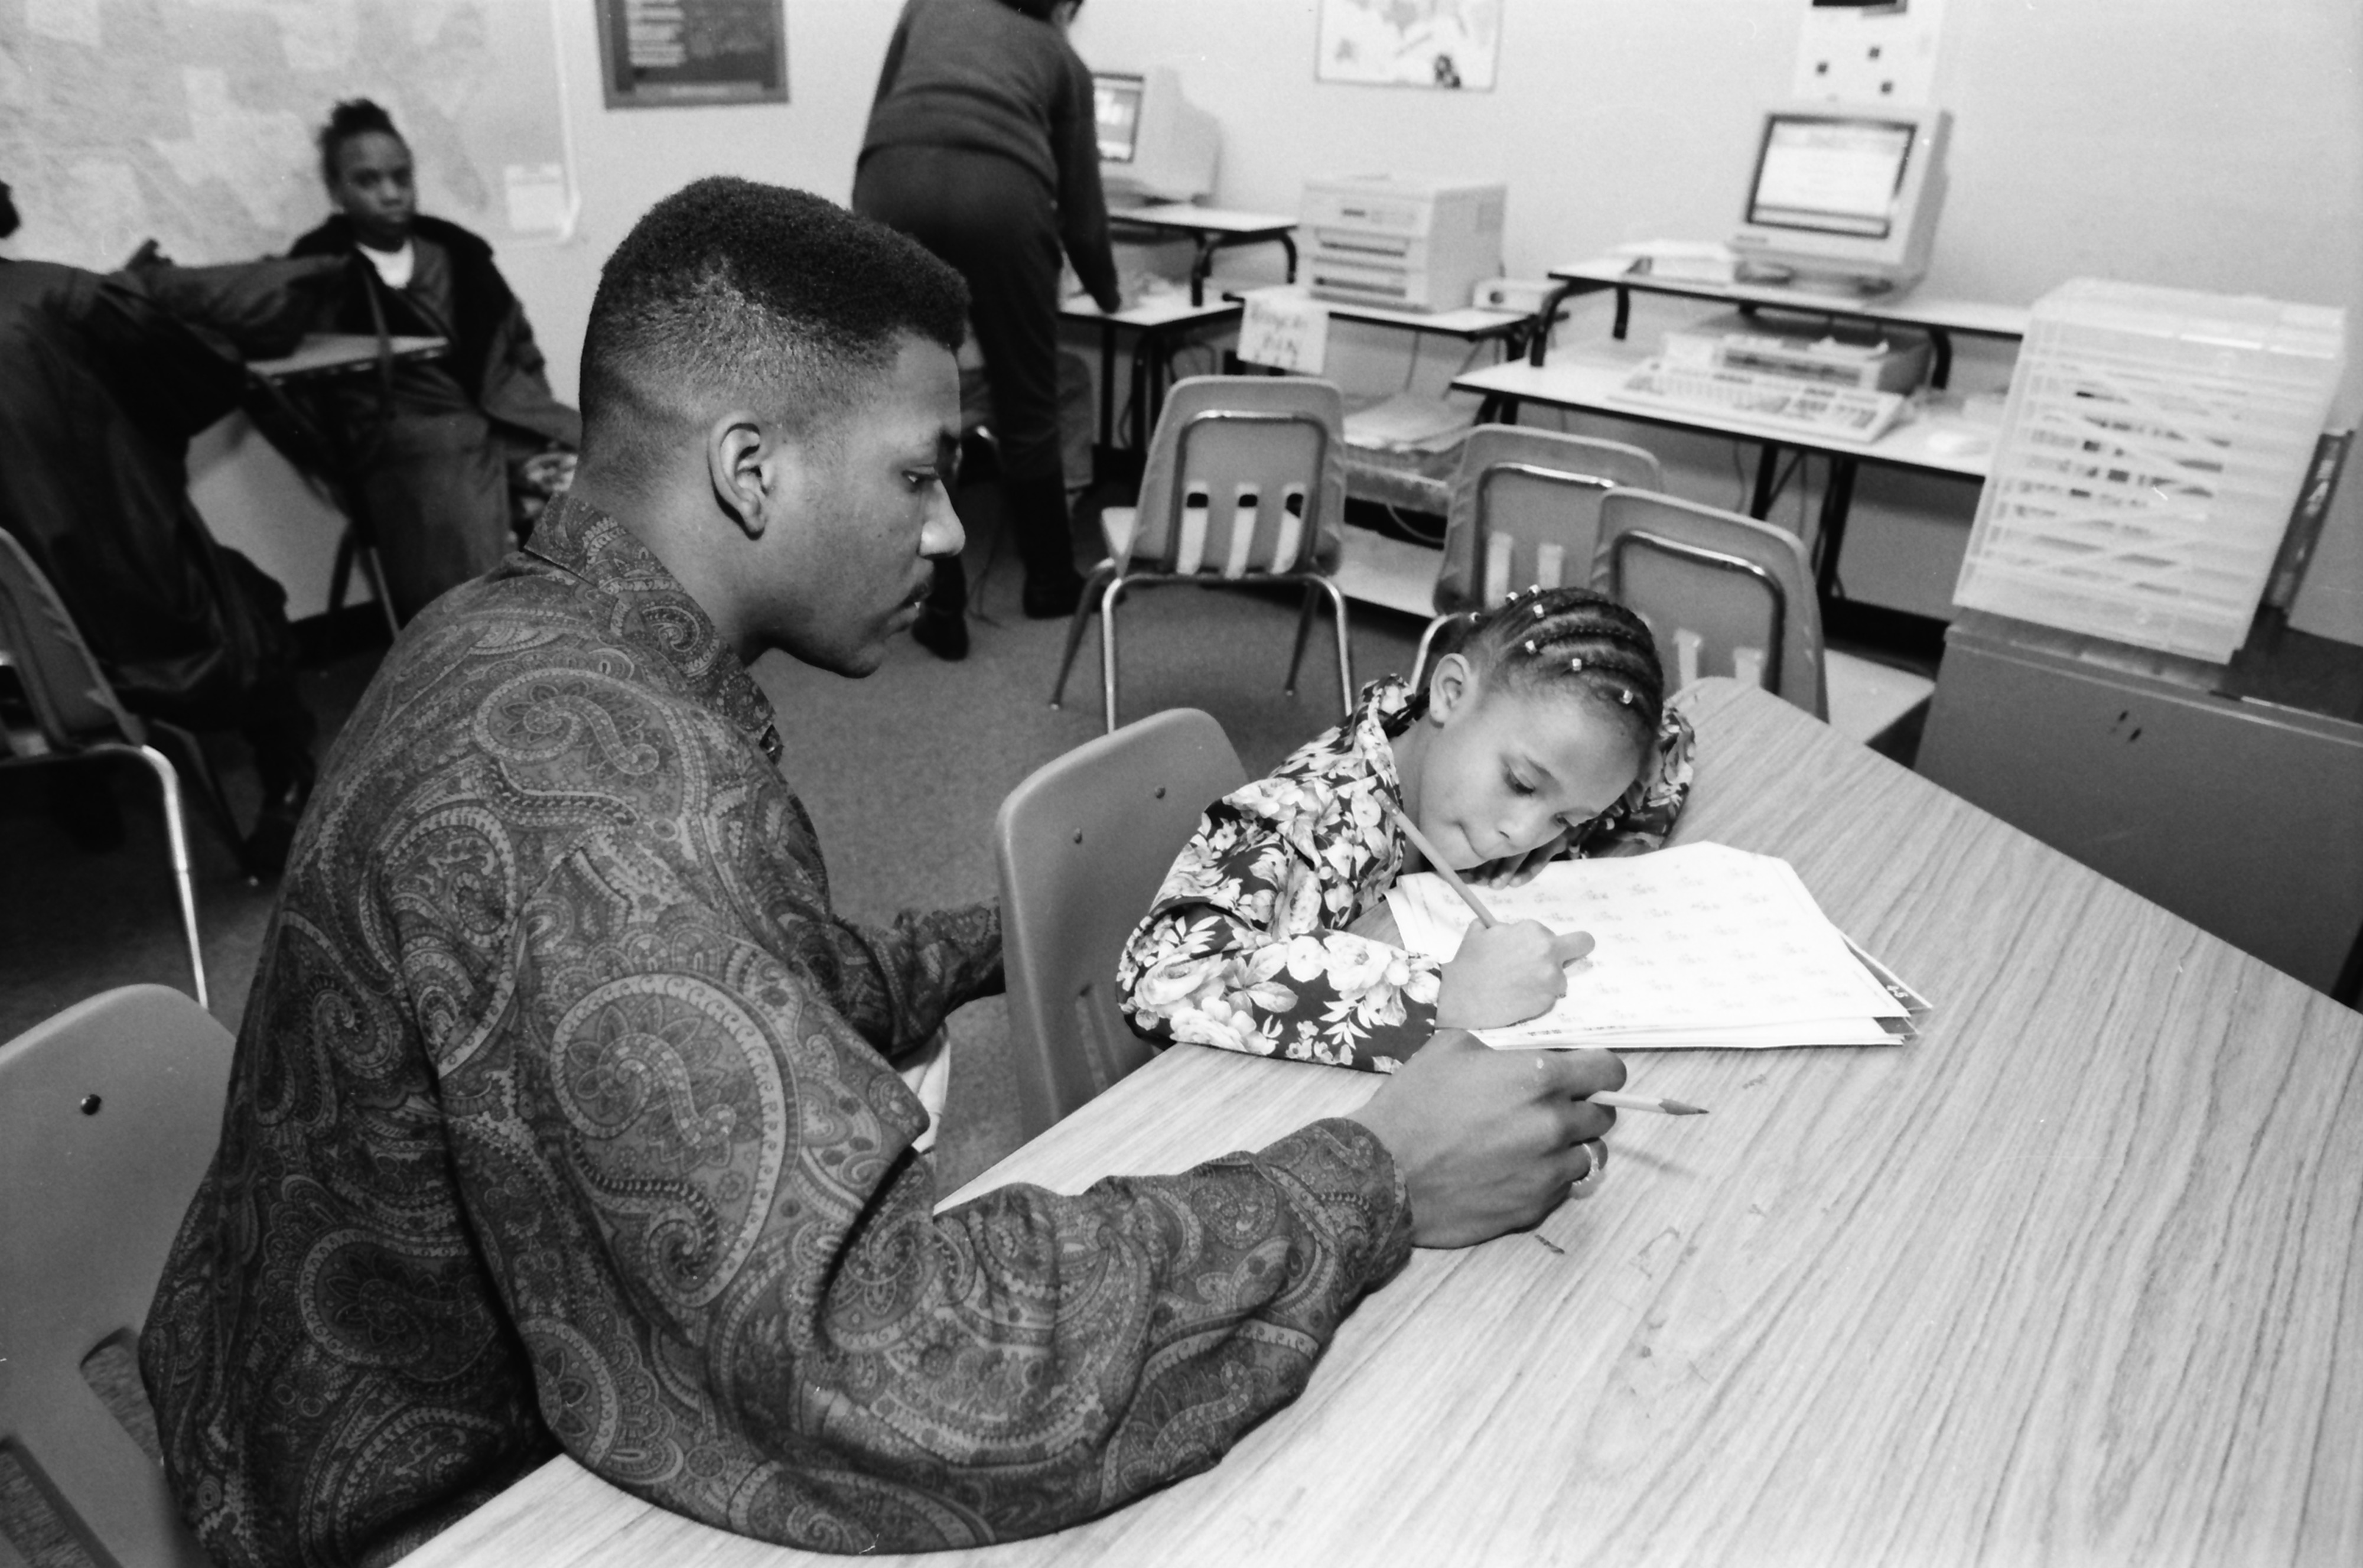 Charles Winston Helps Tutor at the Learning Center at Parkridge Community Center, February 1992 image